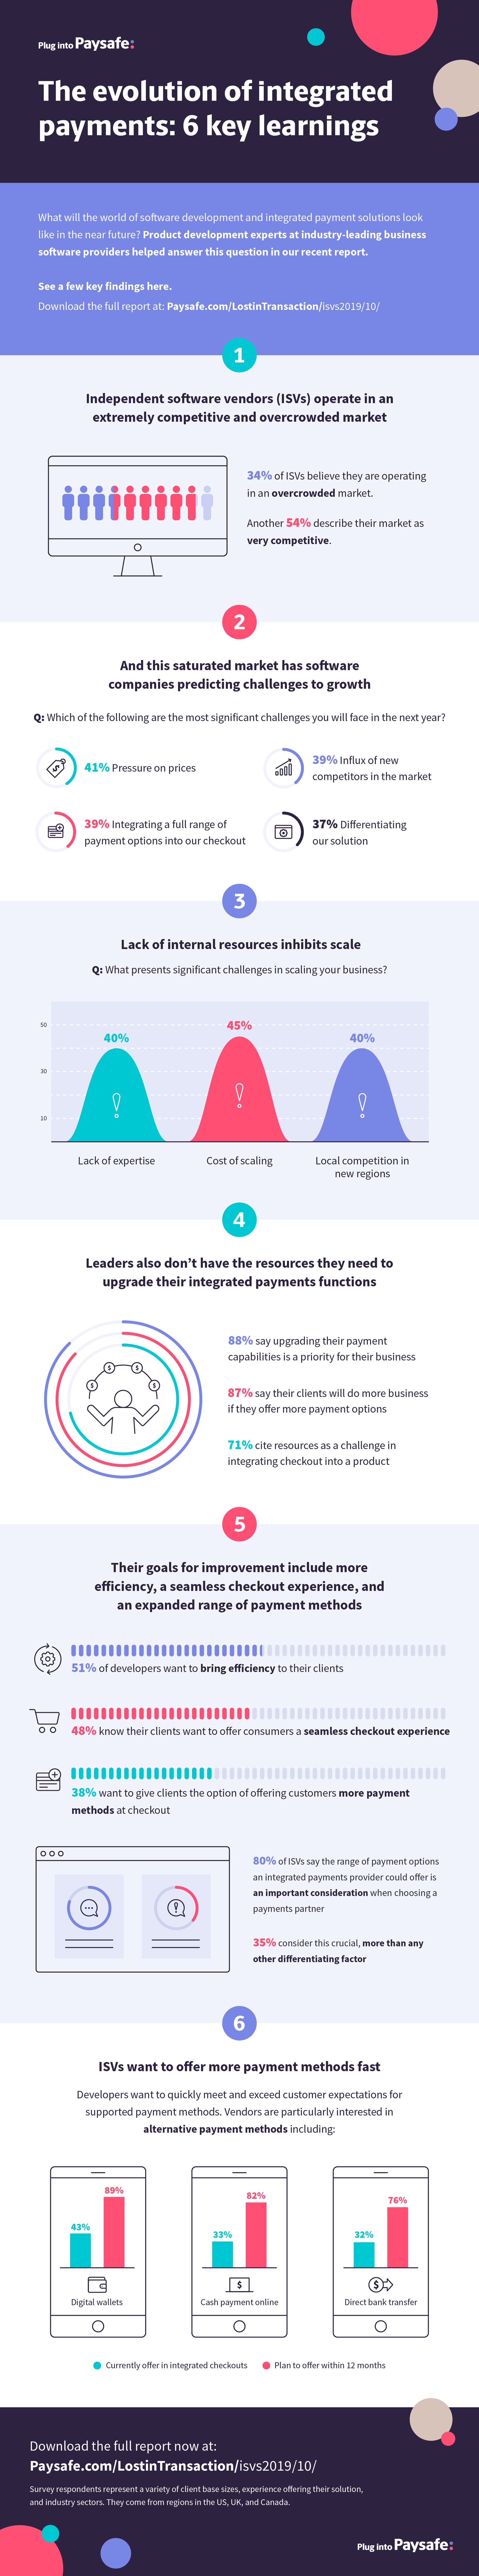 The evolution of integrated payments: 6 key learnings